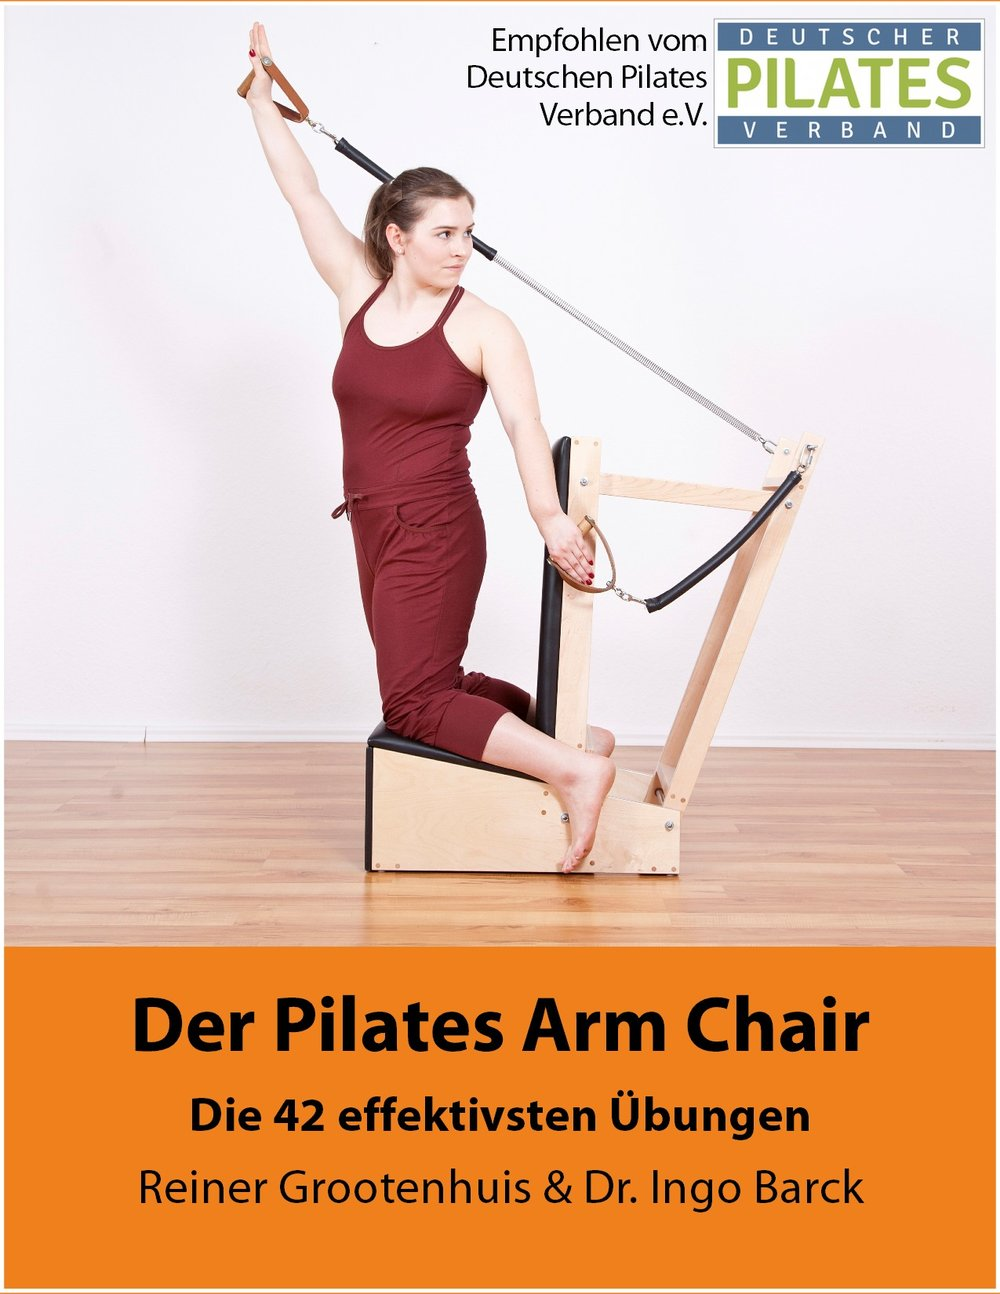 Cover Arm Chair Manual.jpg